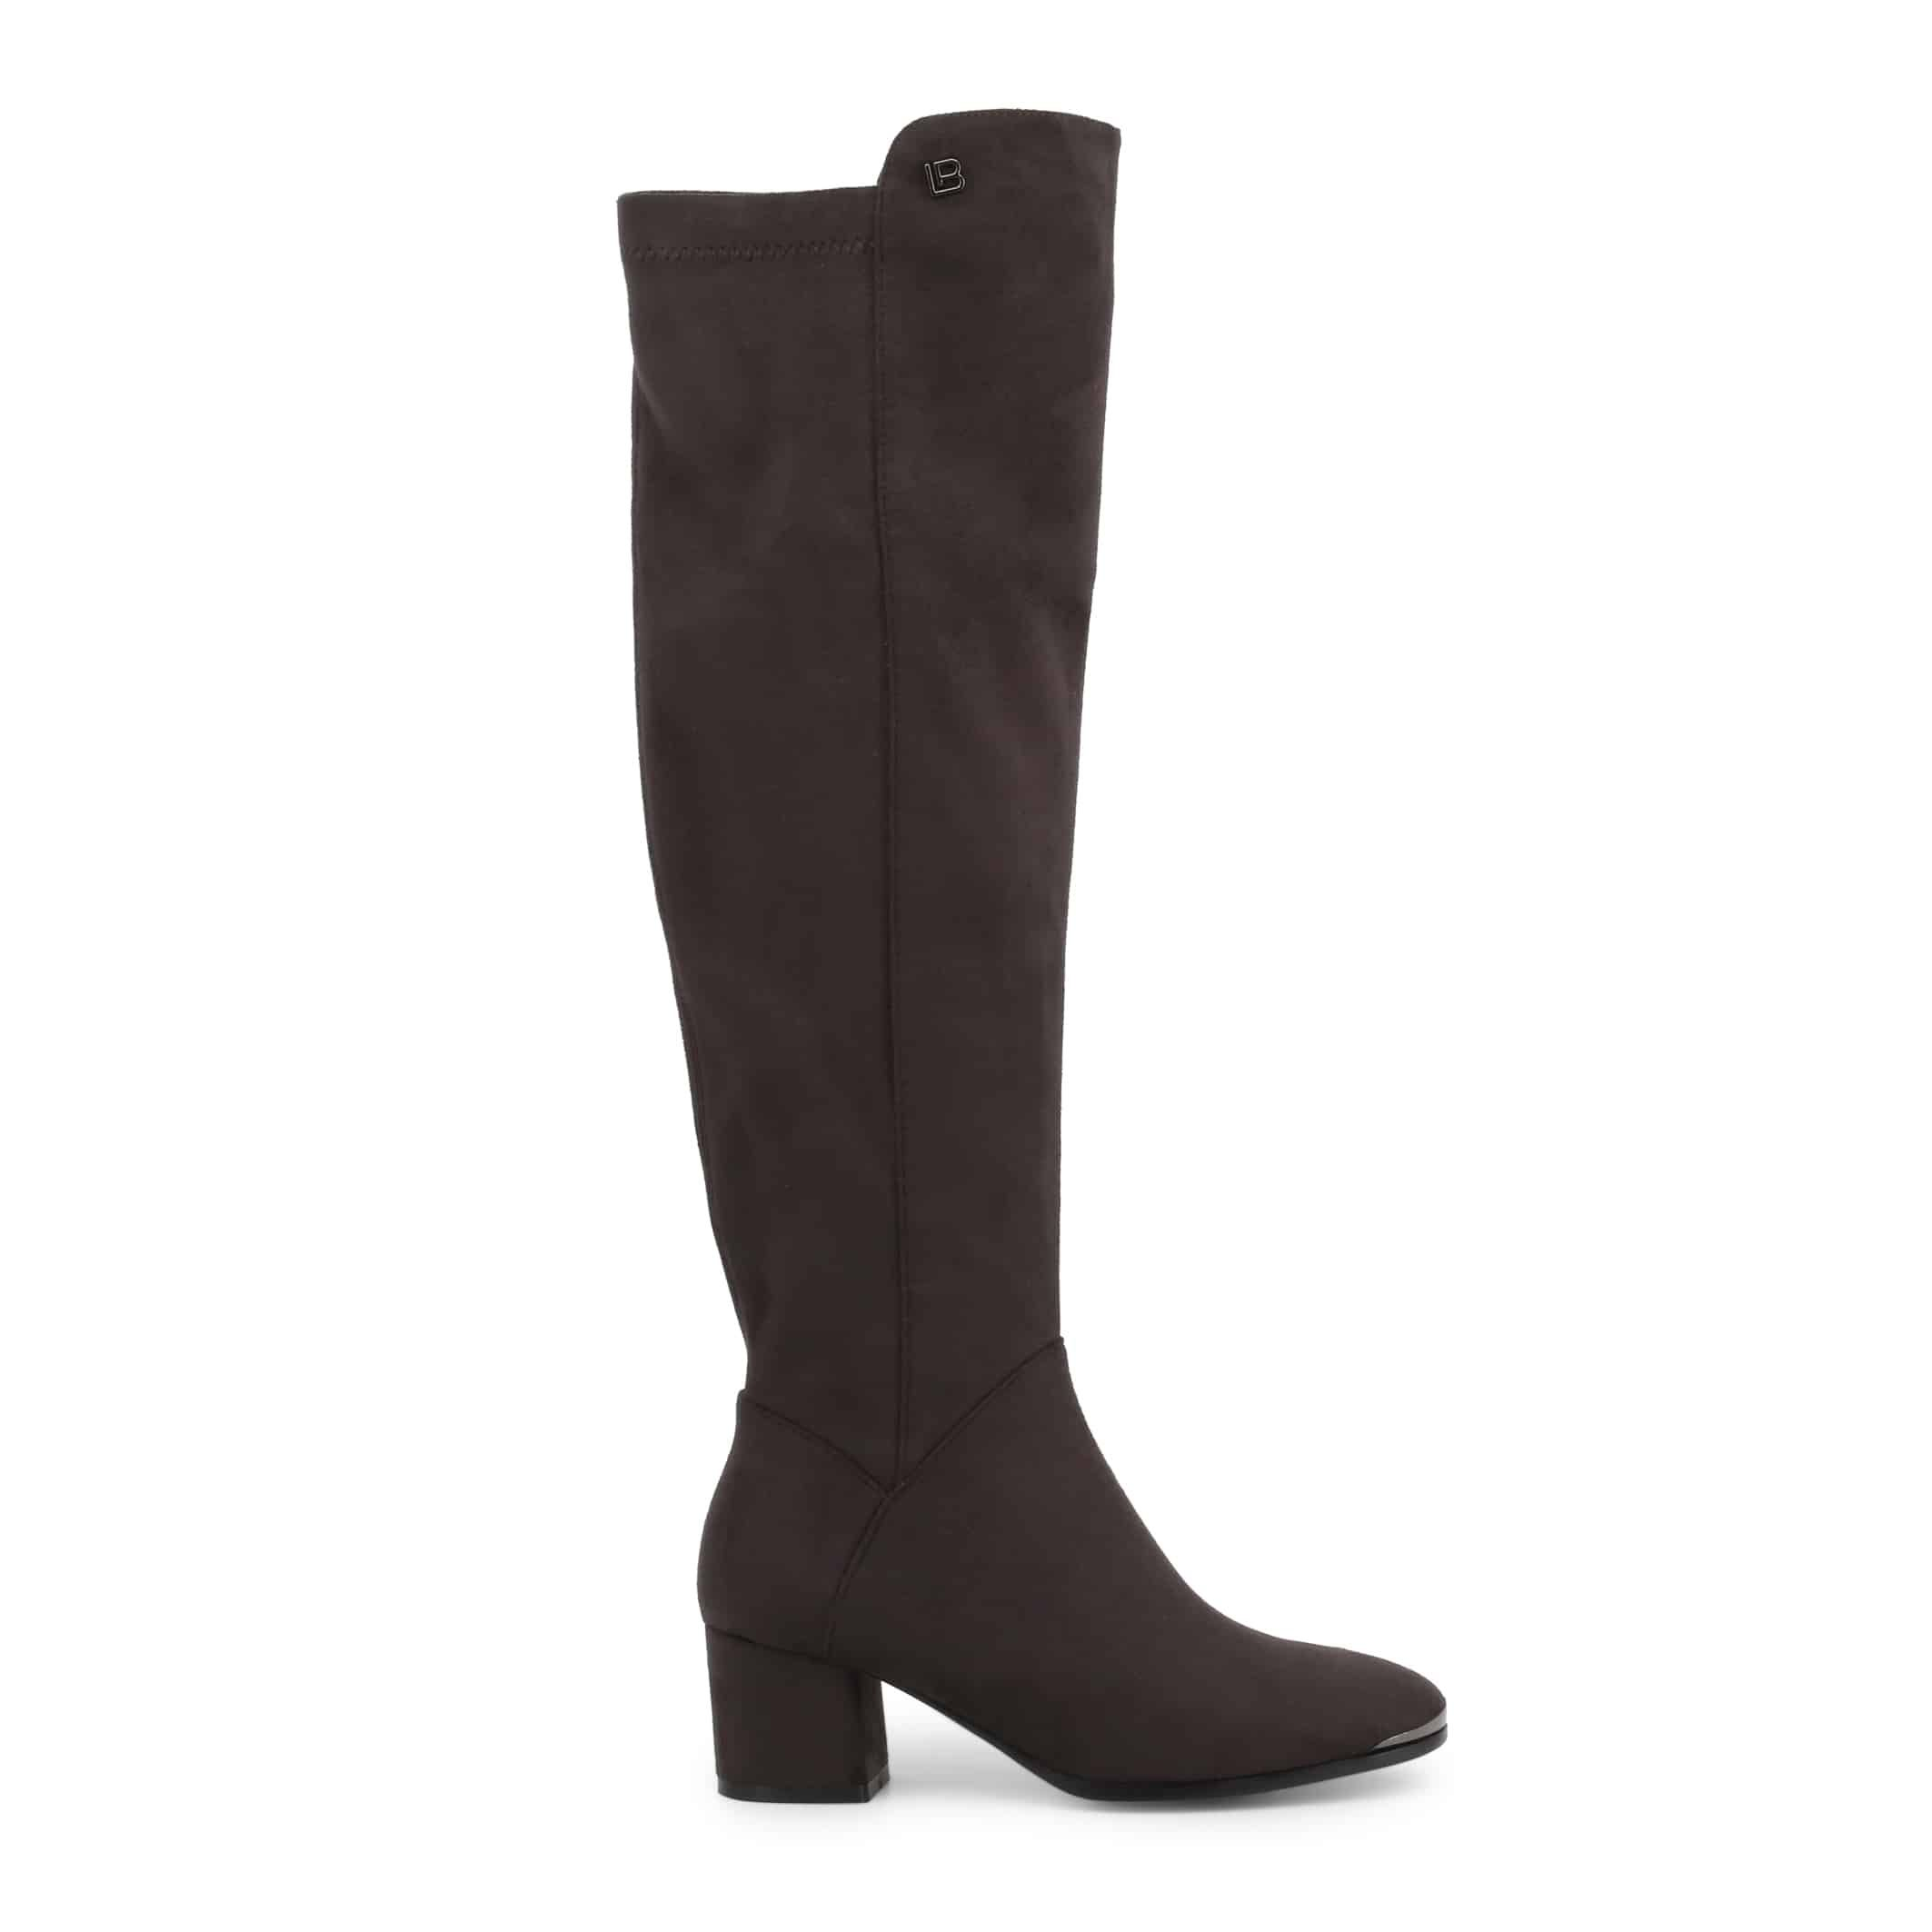 Bottines Laura Biagiotti – 5898-19